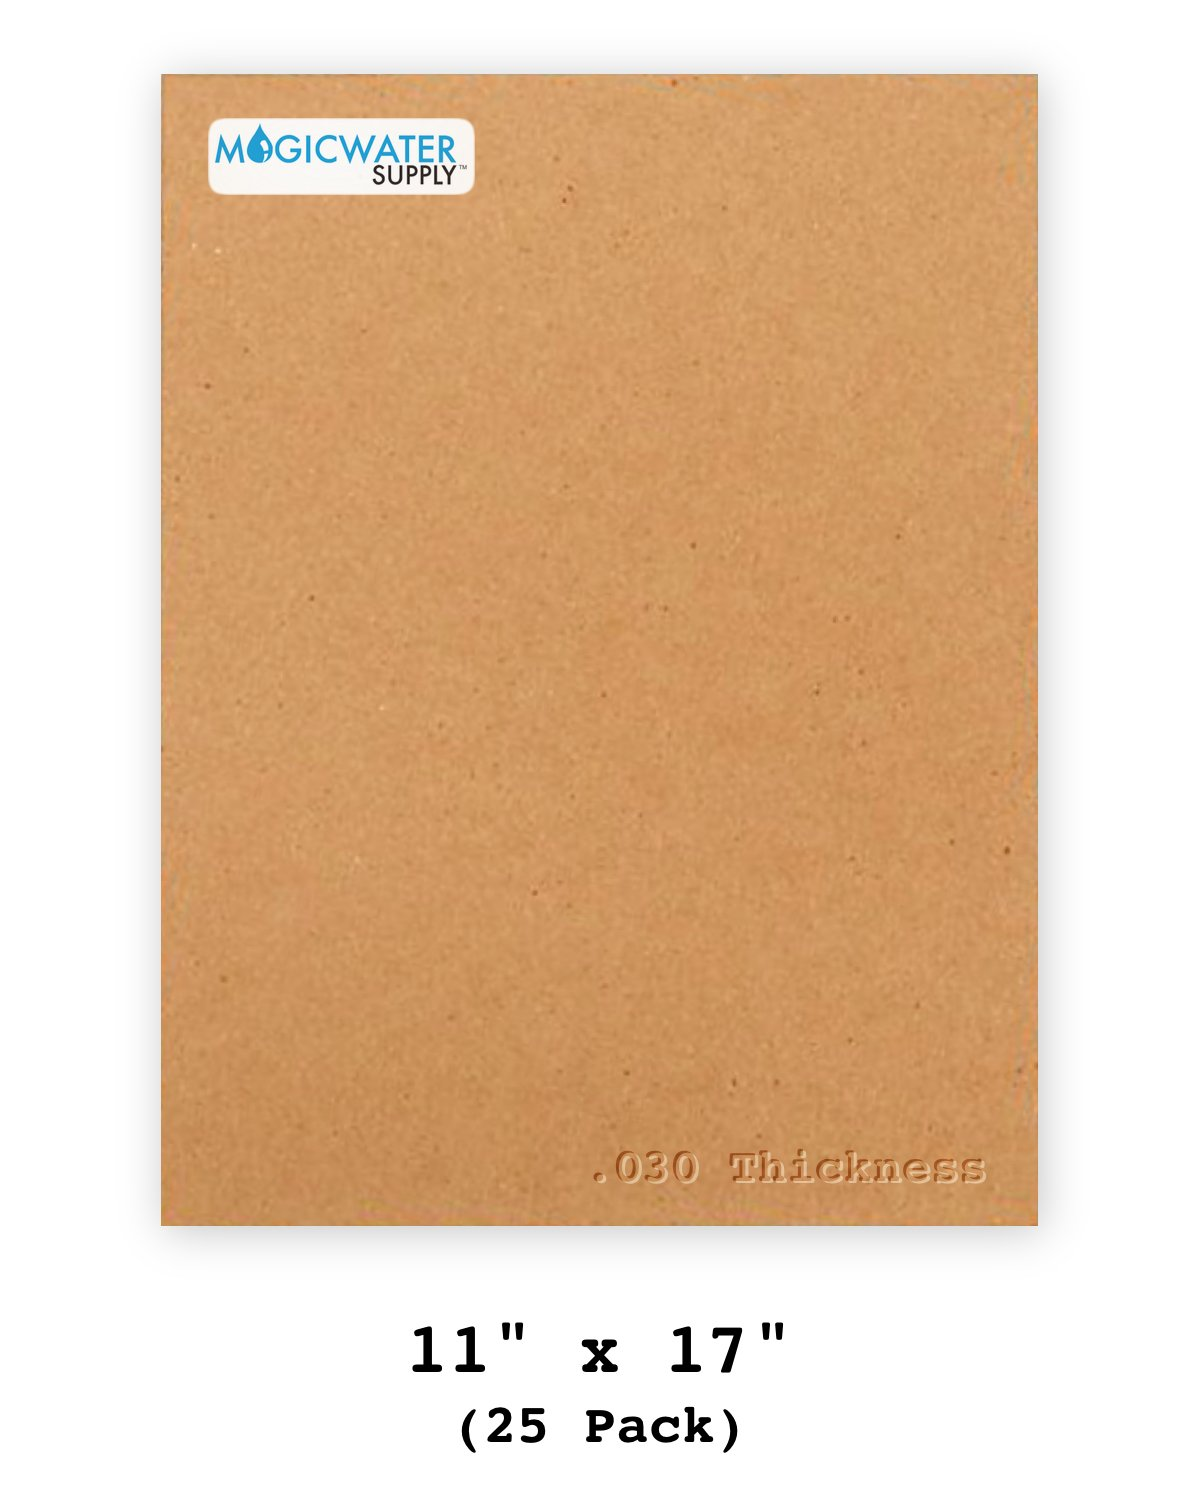 25 Chipboard Sheets 11 x 17 inch - 30pt (Point) Medium Weight Brown Kraft Cardboard for Scrapbooking & Picture Frame Backing (.030 Caliper Thick) Paper Board | MagicWater Supply MWS